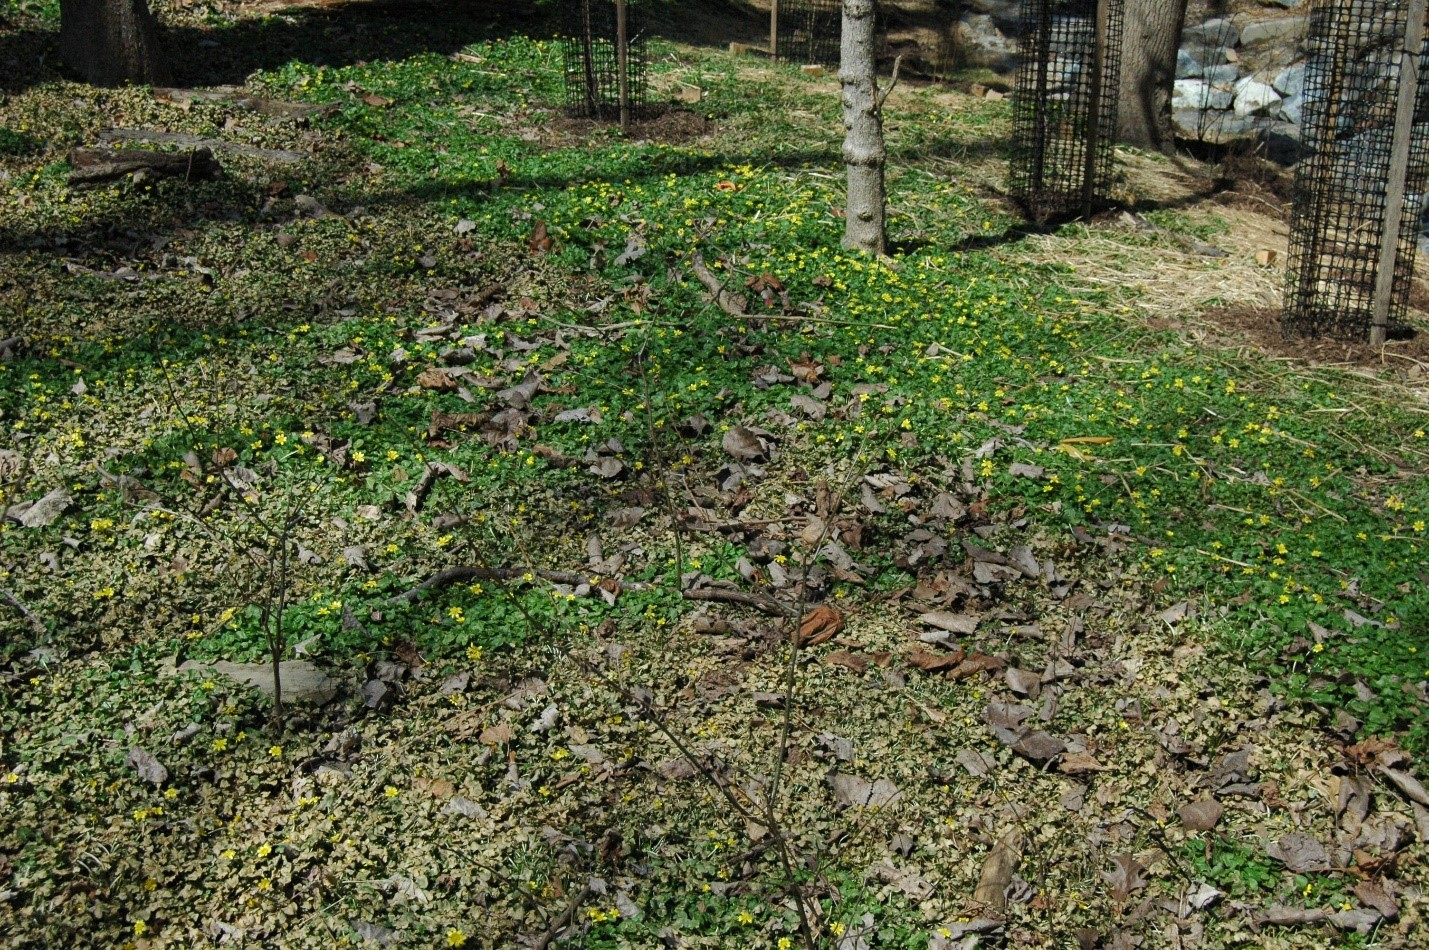 Lesser Celandine in Chevy Chase, MD